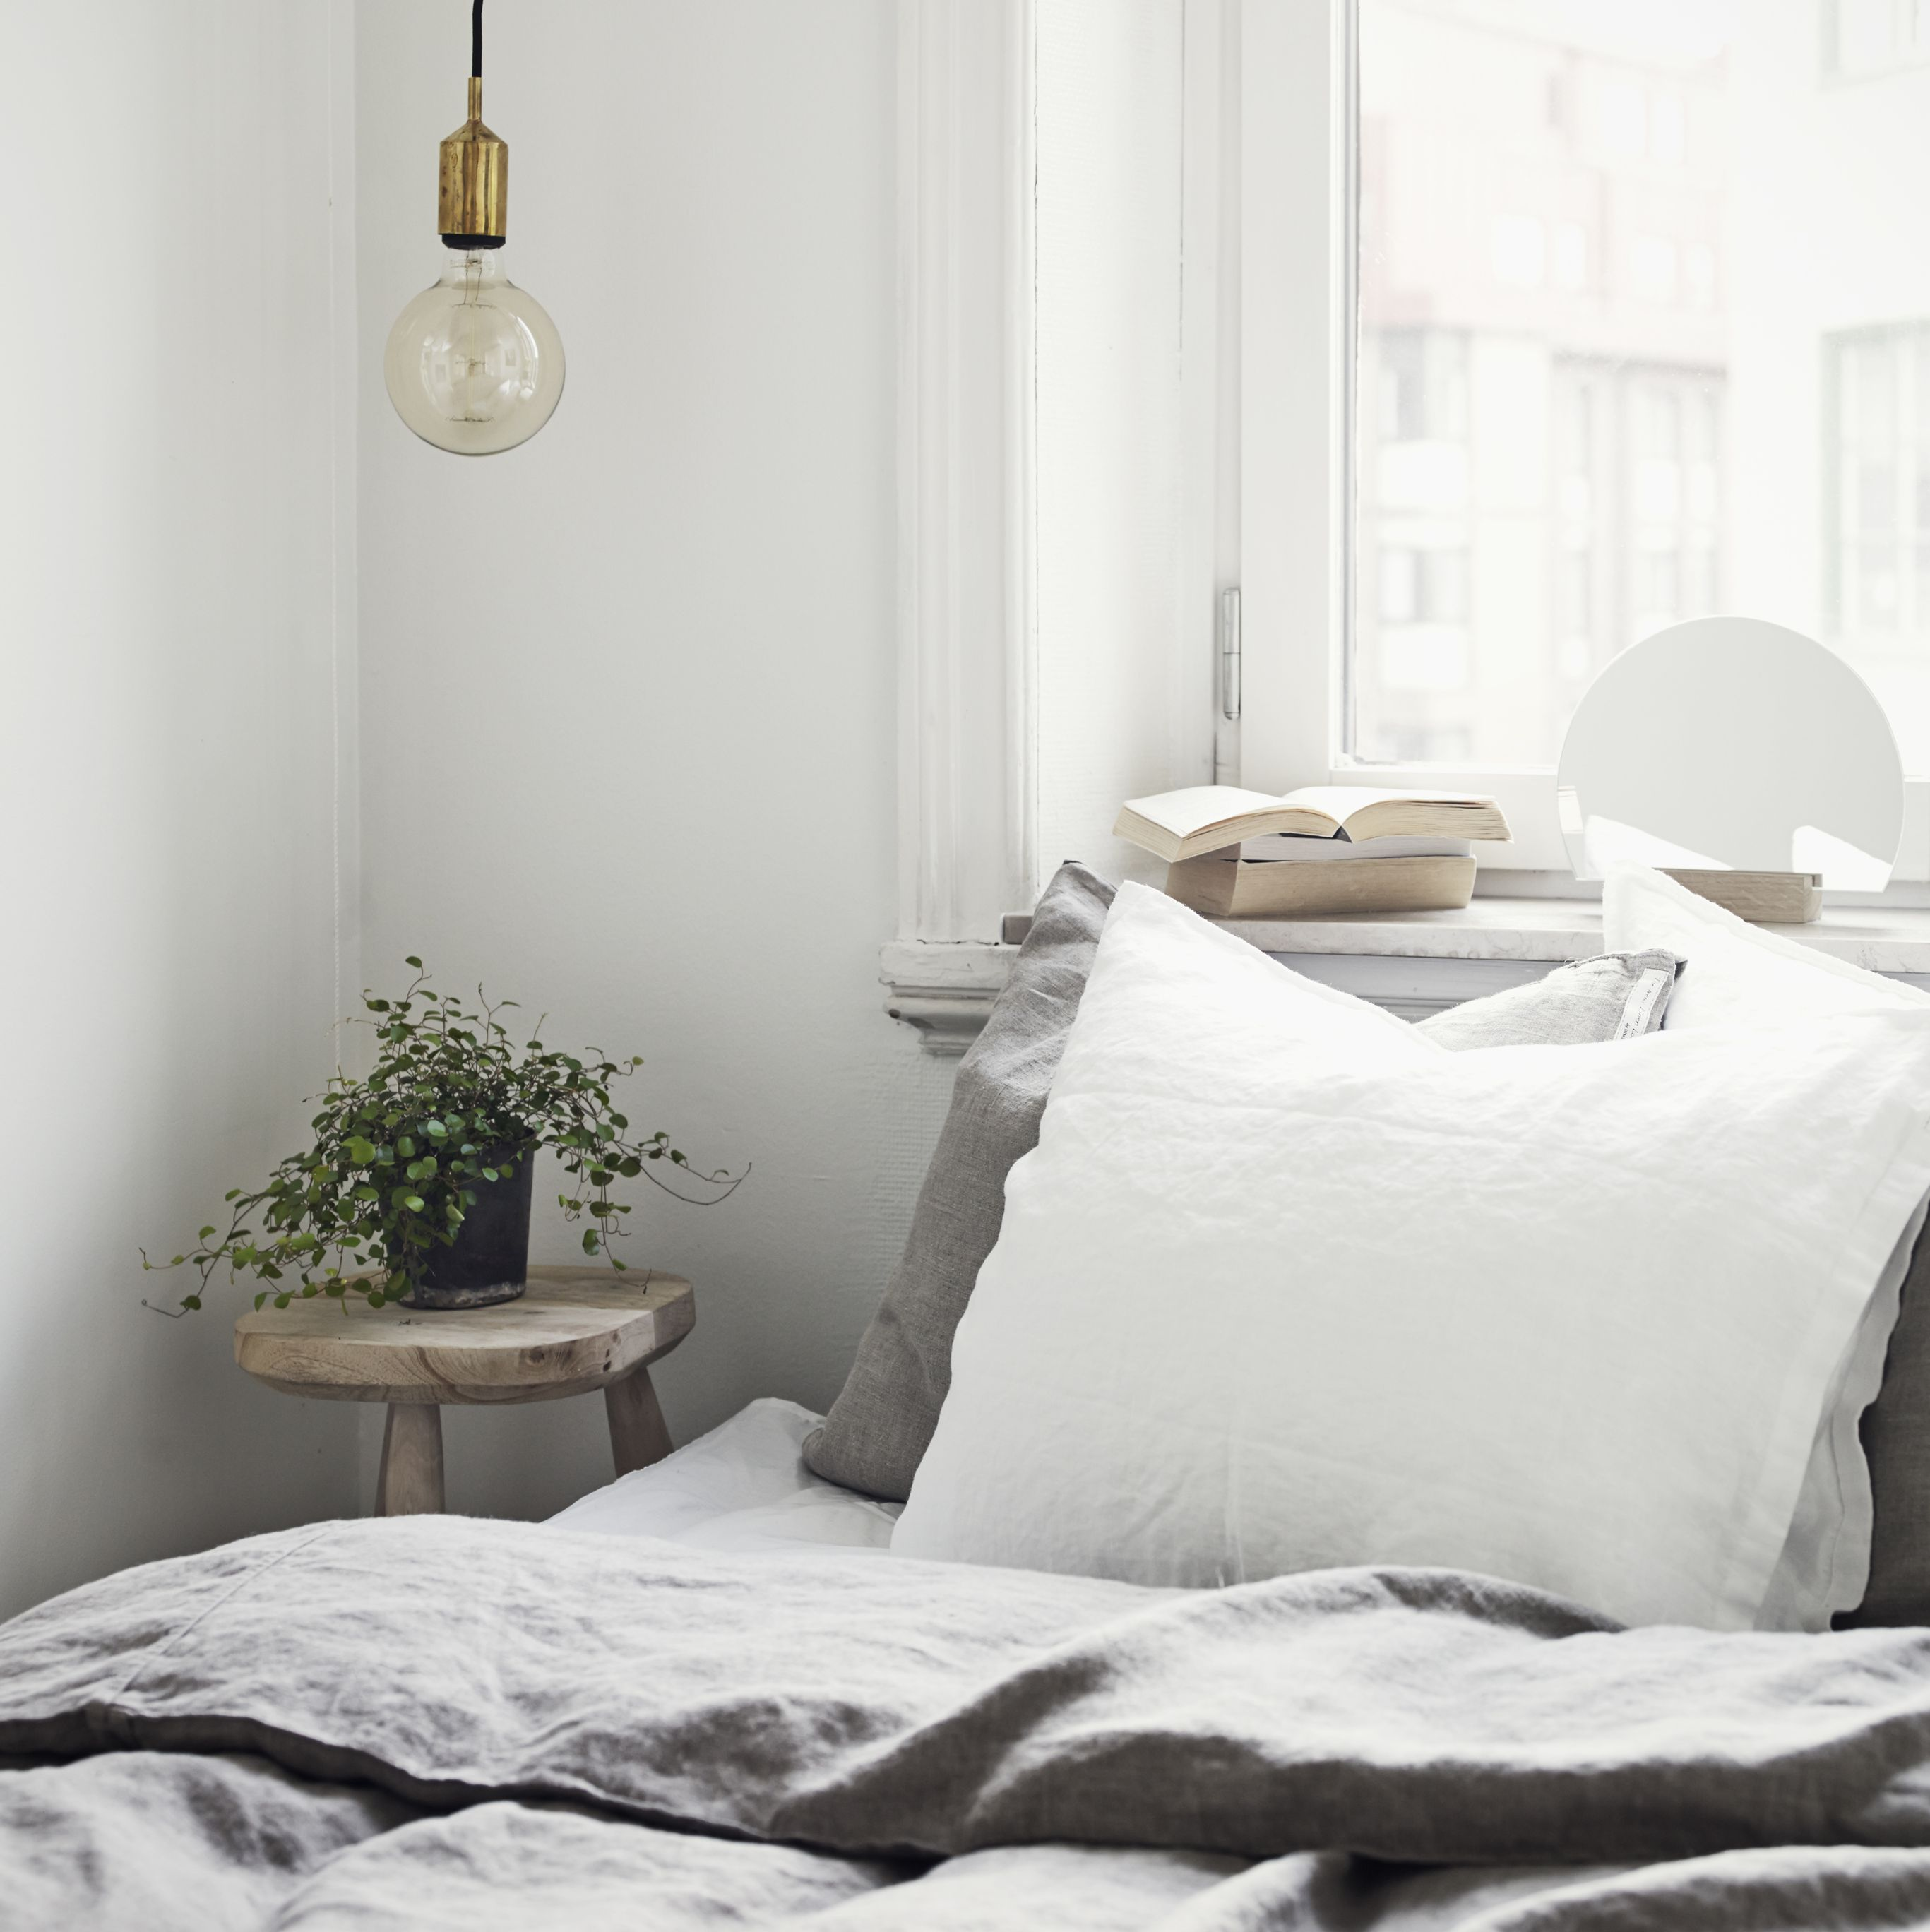 How Often Should You Replace Your Pillows?